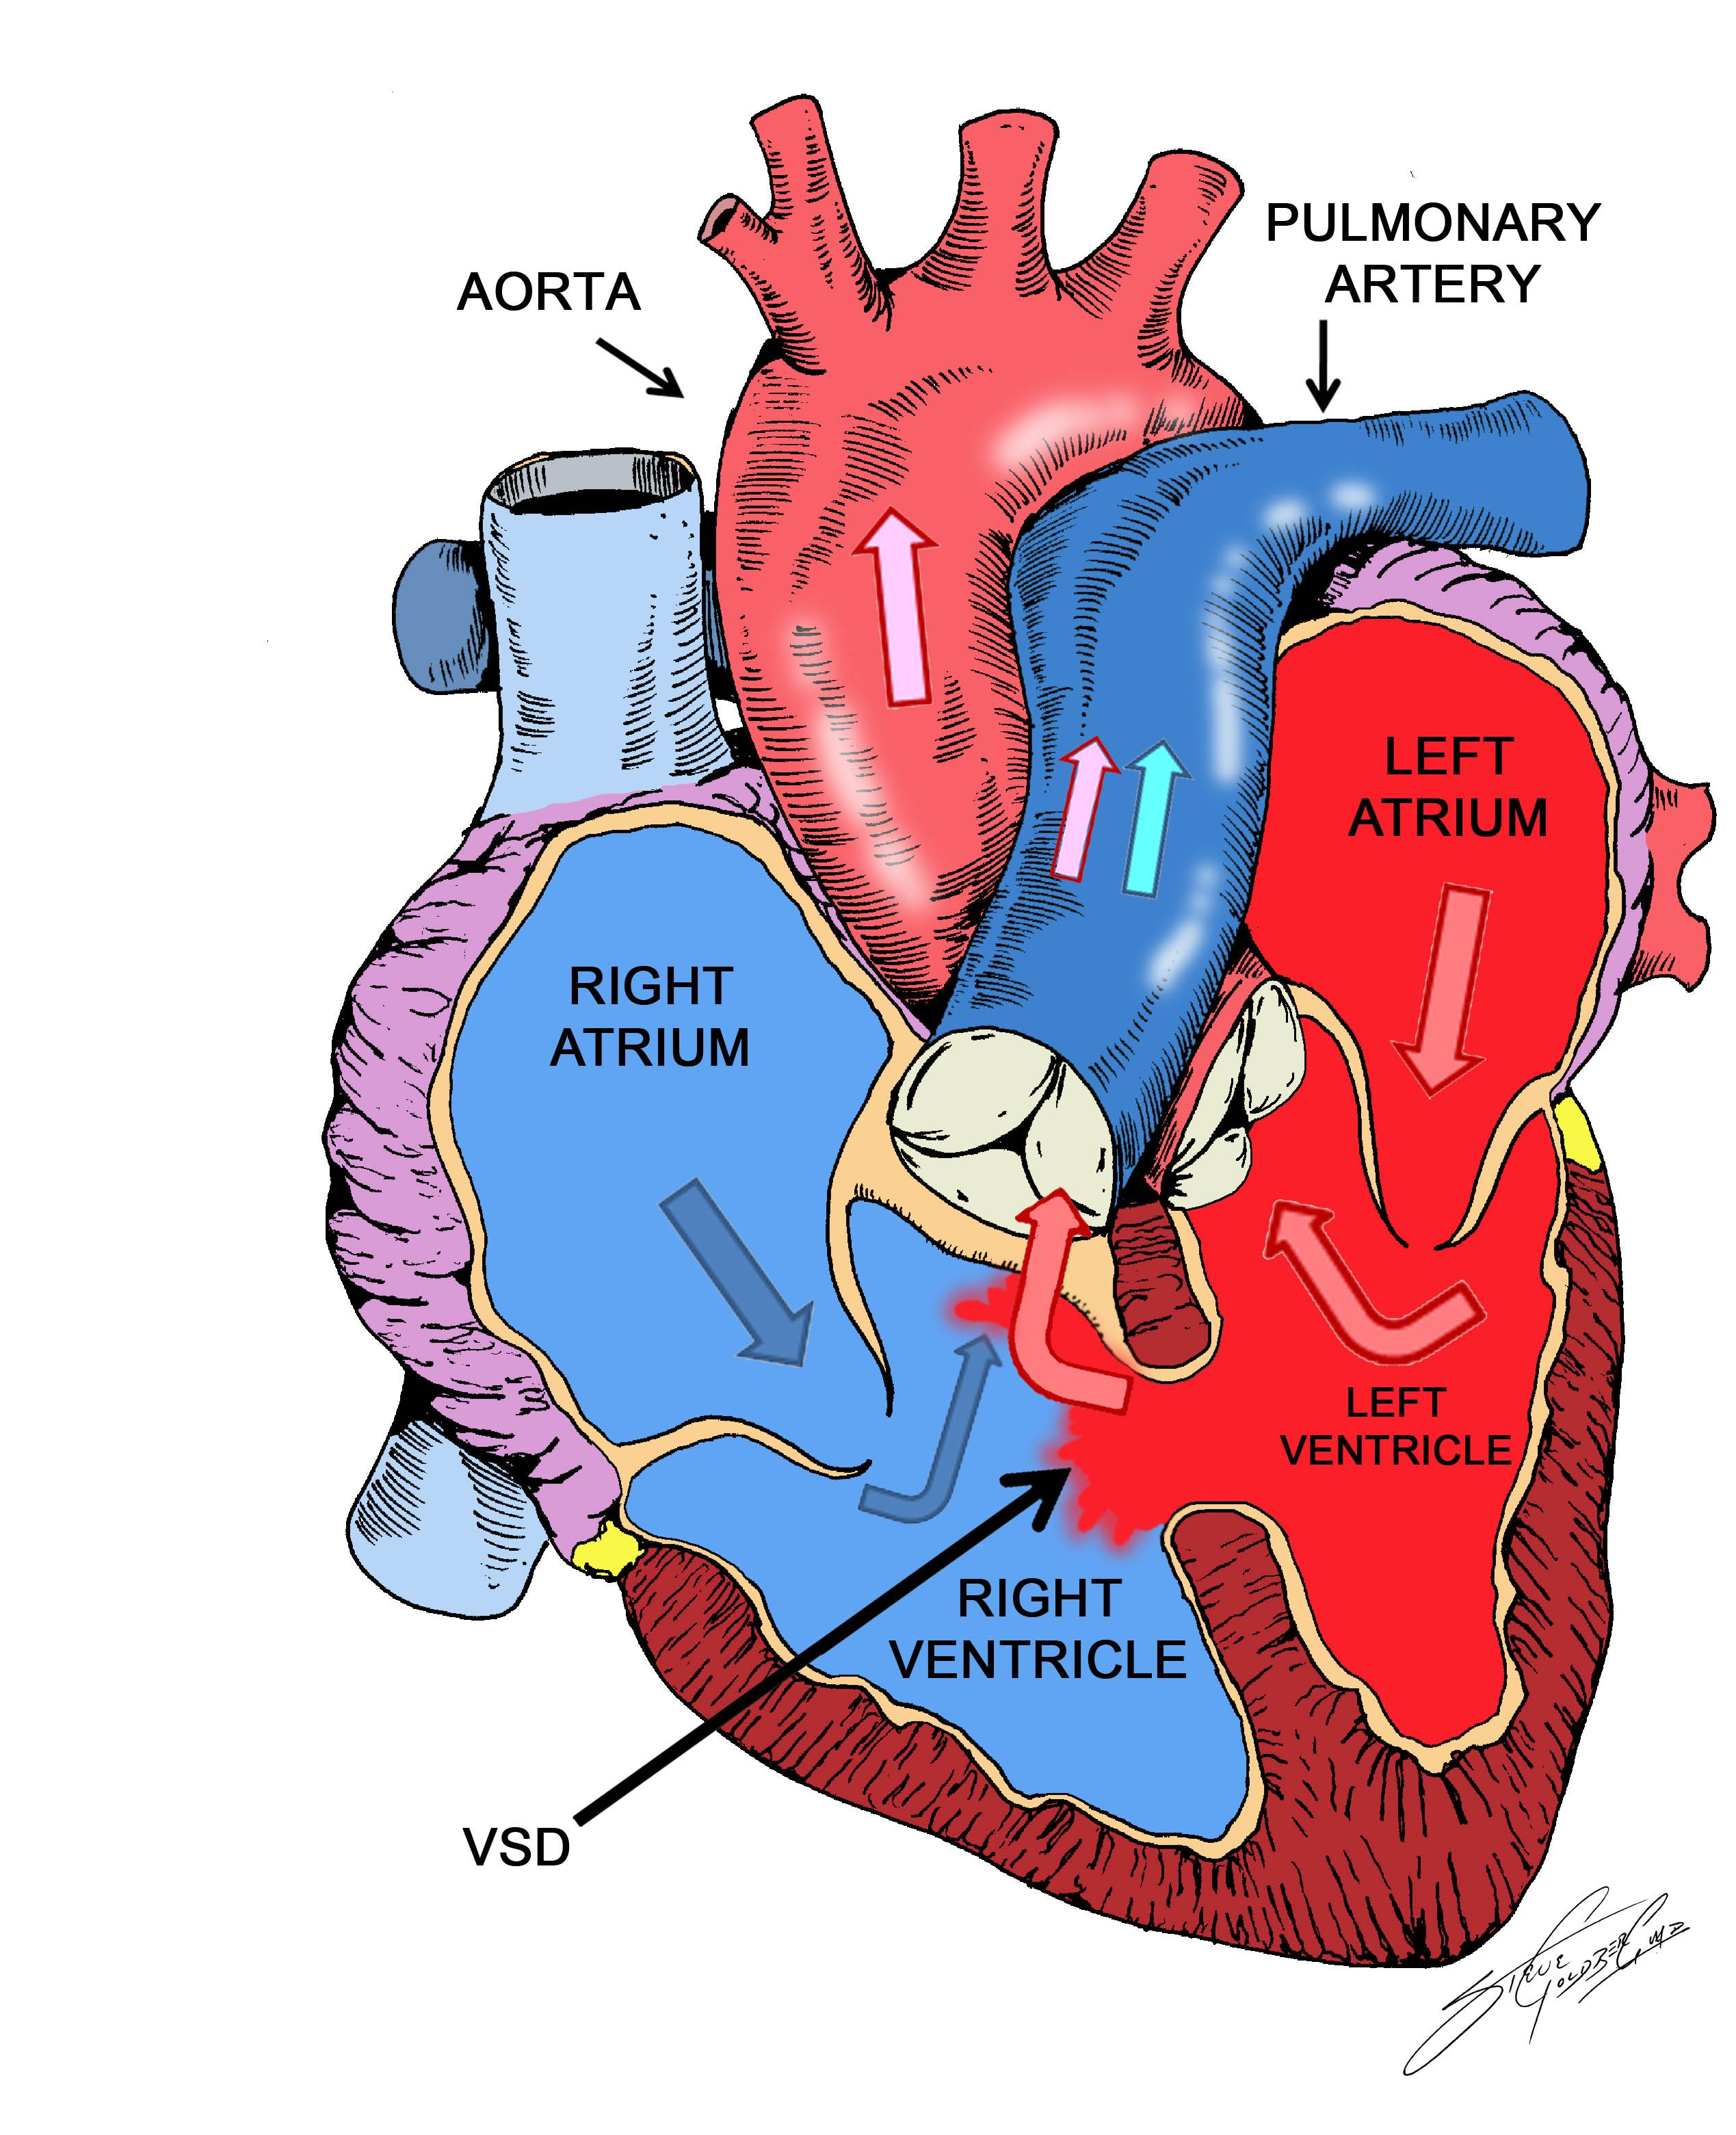 ventricular septal defect Ventricular septal defects are rare congenital malformations of the heart that occur more frequently in males than females approximately 1 percent of newborns have a congenital heart defect.